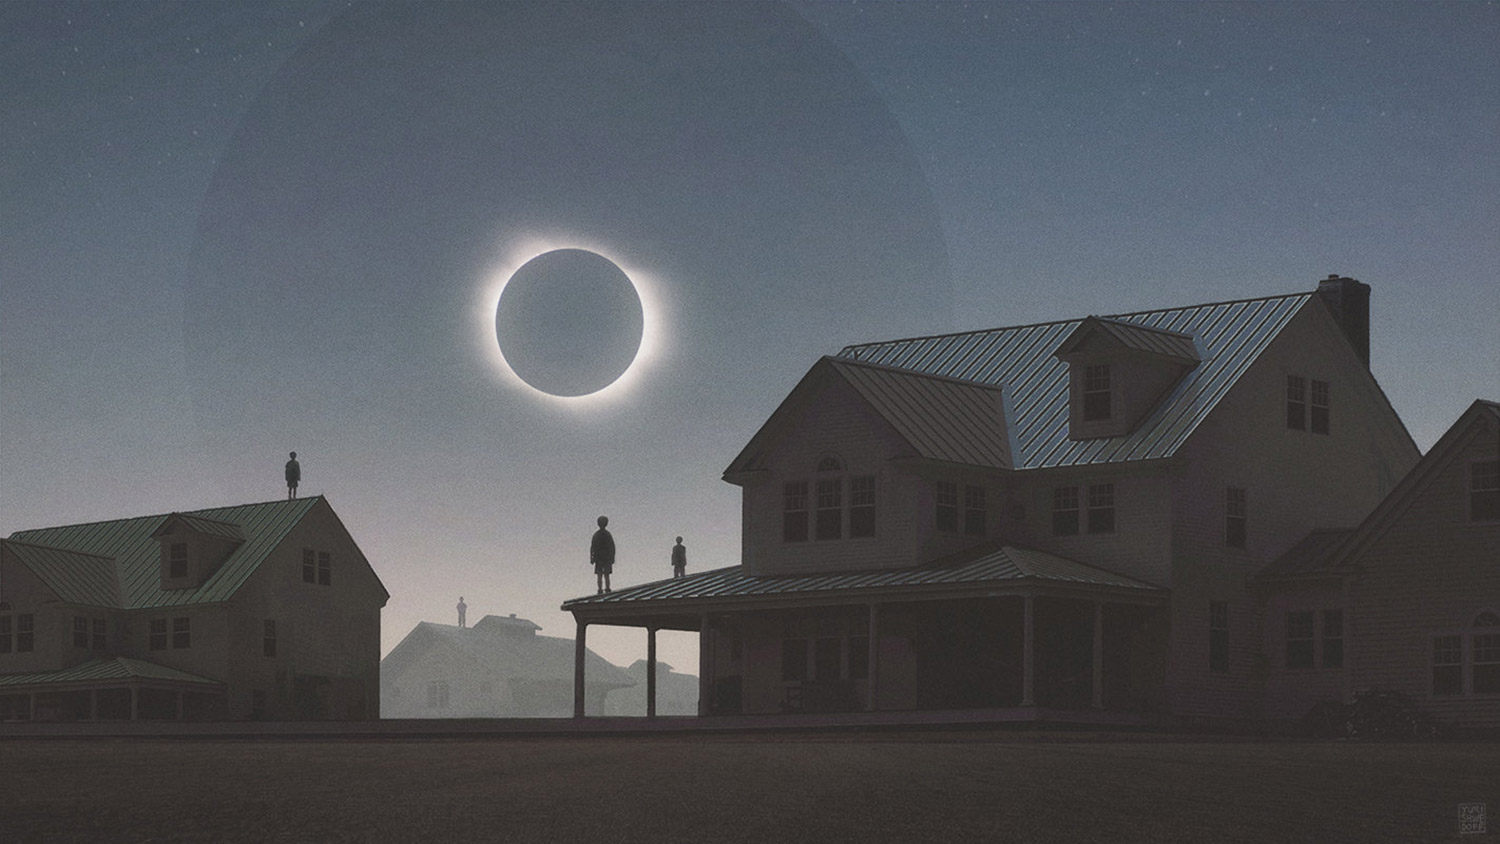 Yuri Shwedoff, Solar Eclipse - eclipse over apocalyptic town